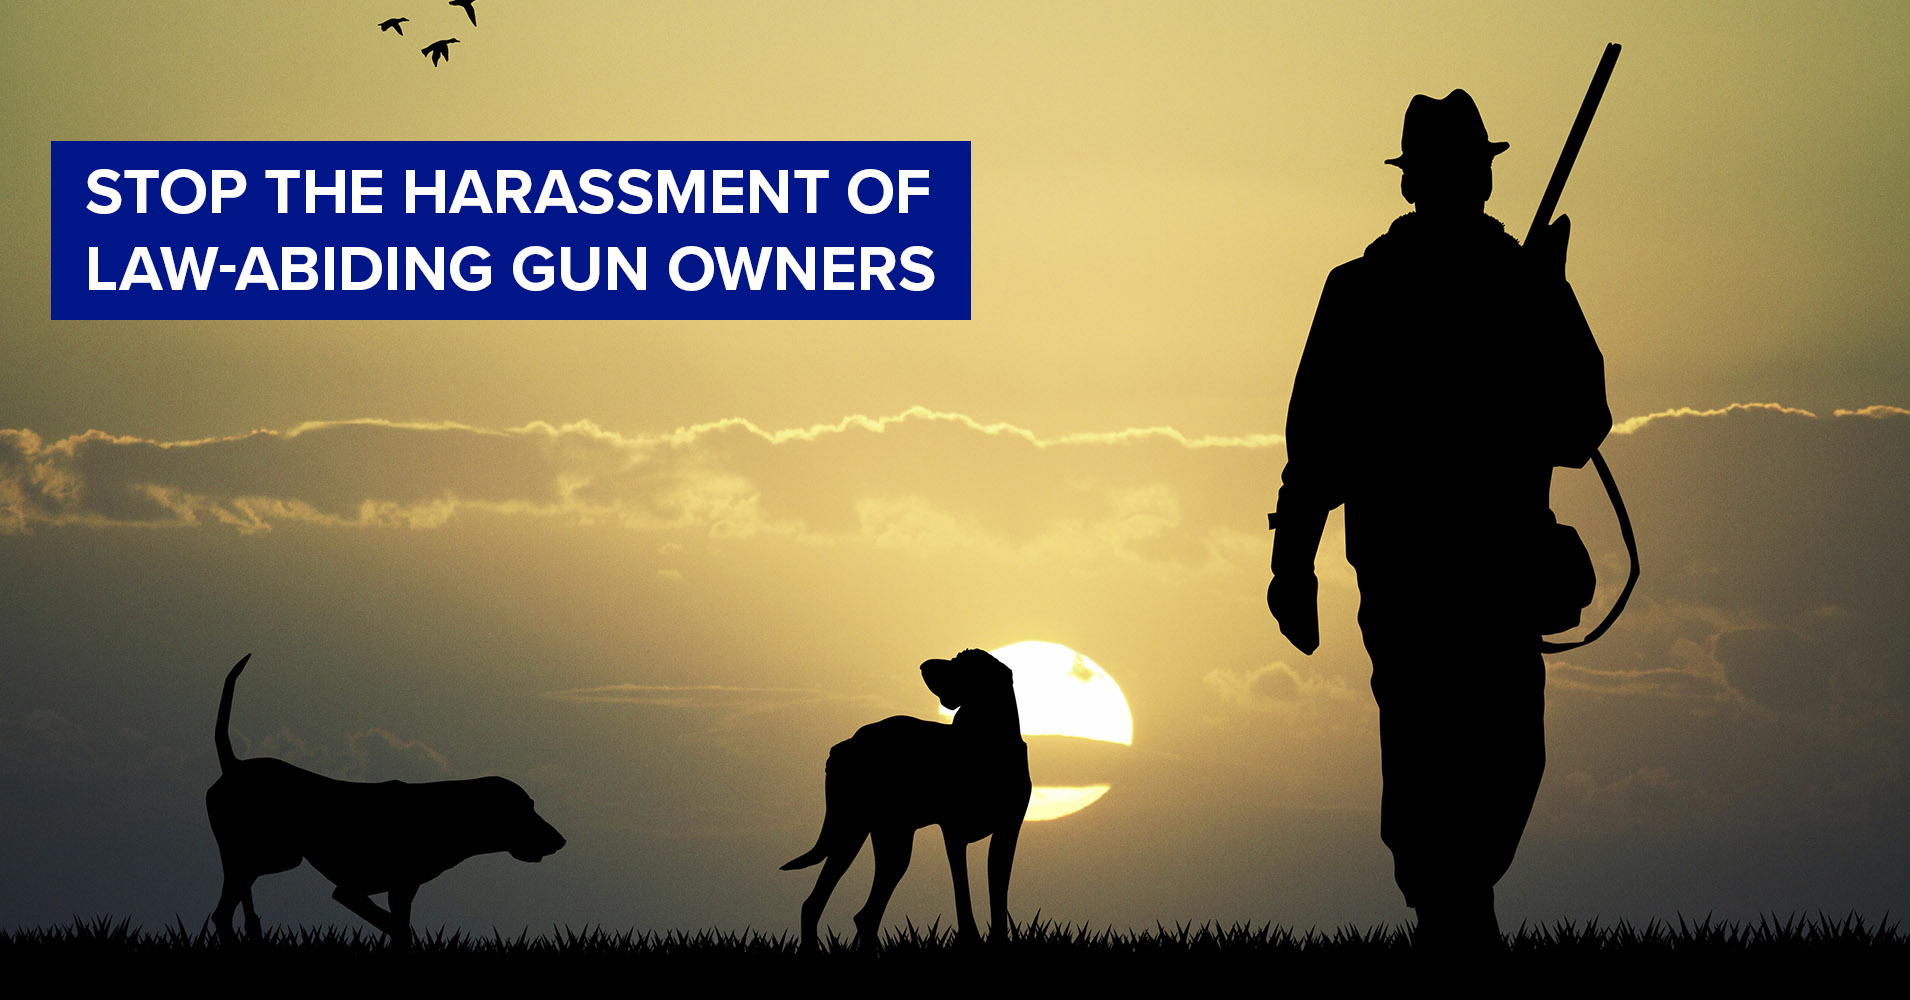 Stop the harassment of law-abiding gun owners